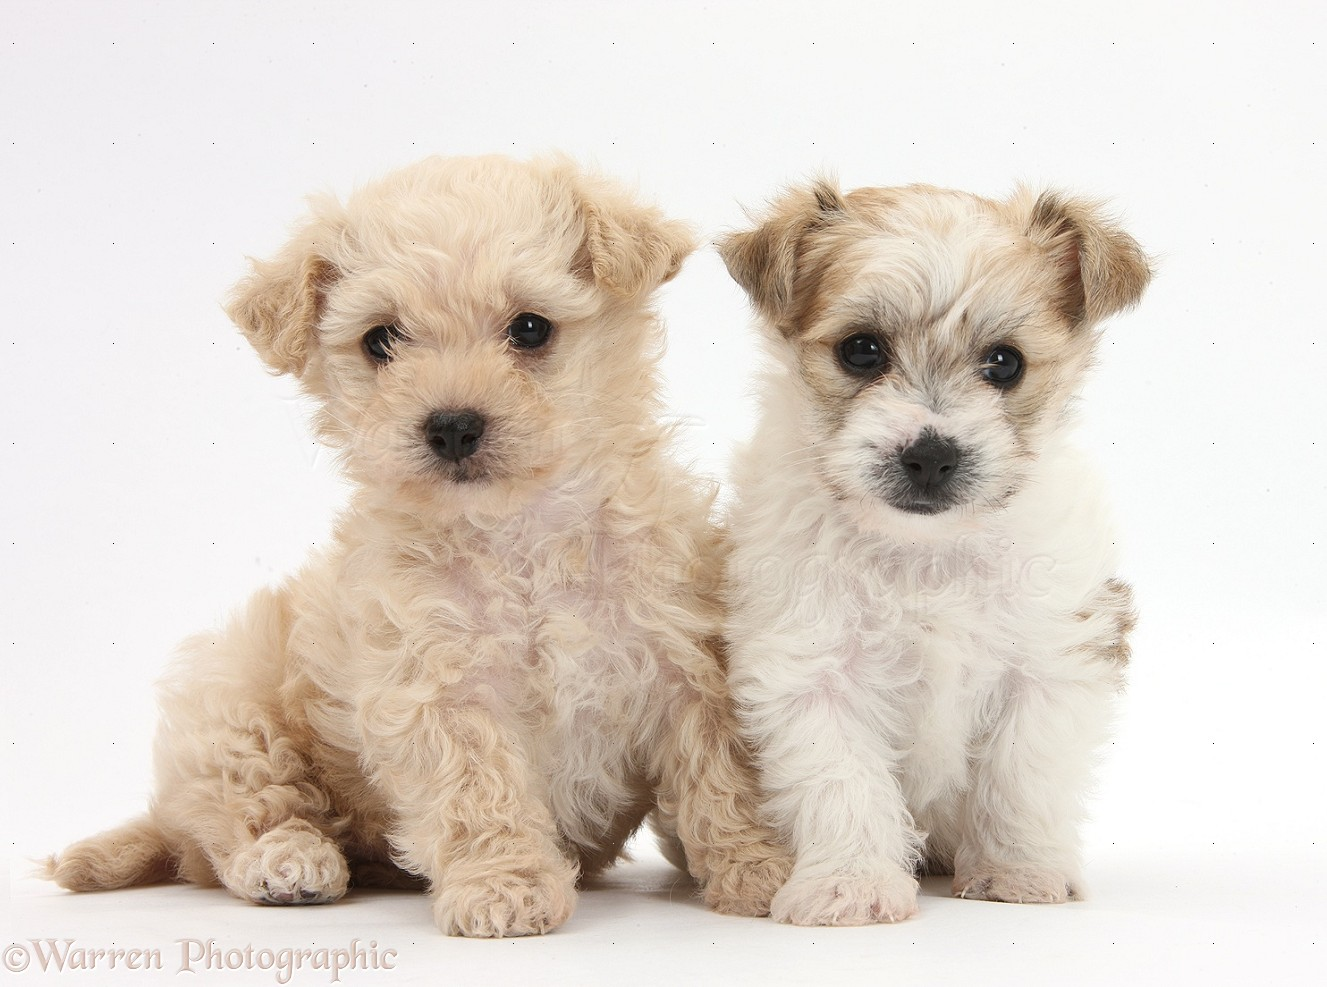 WP35554 Bichon Frisé x Yorkshire Terrier pups, 6 weeks old.